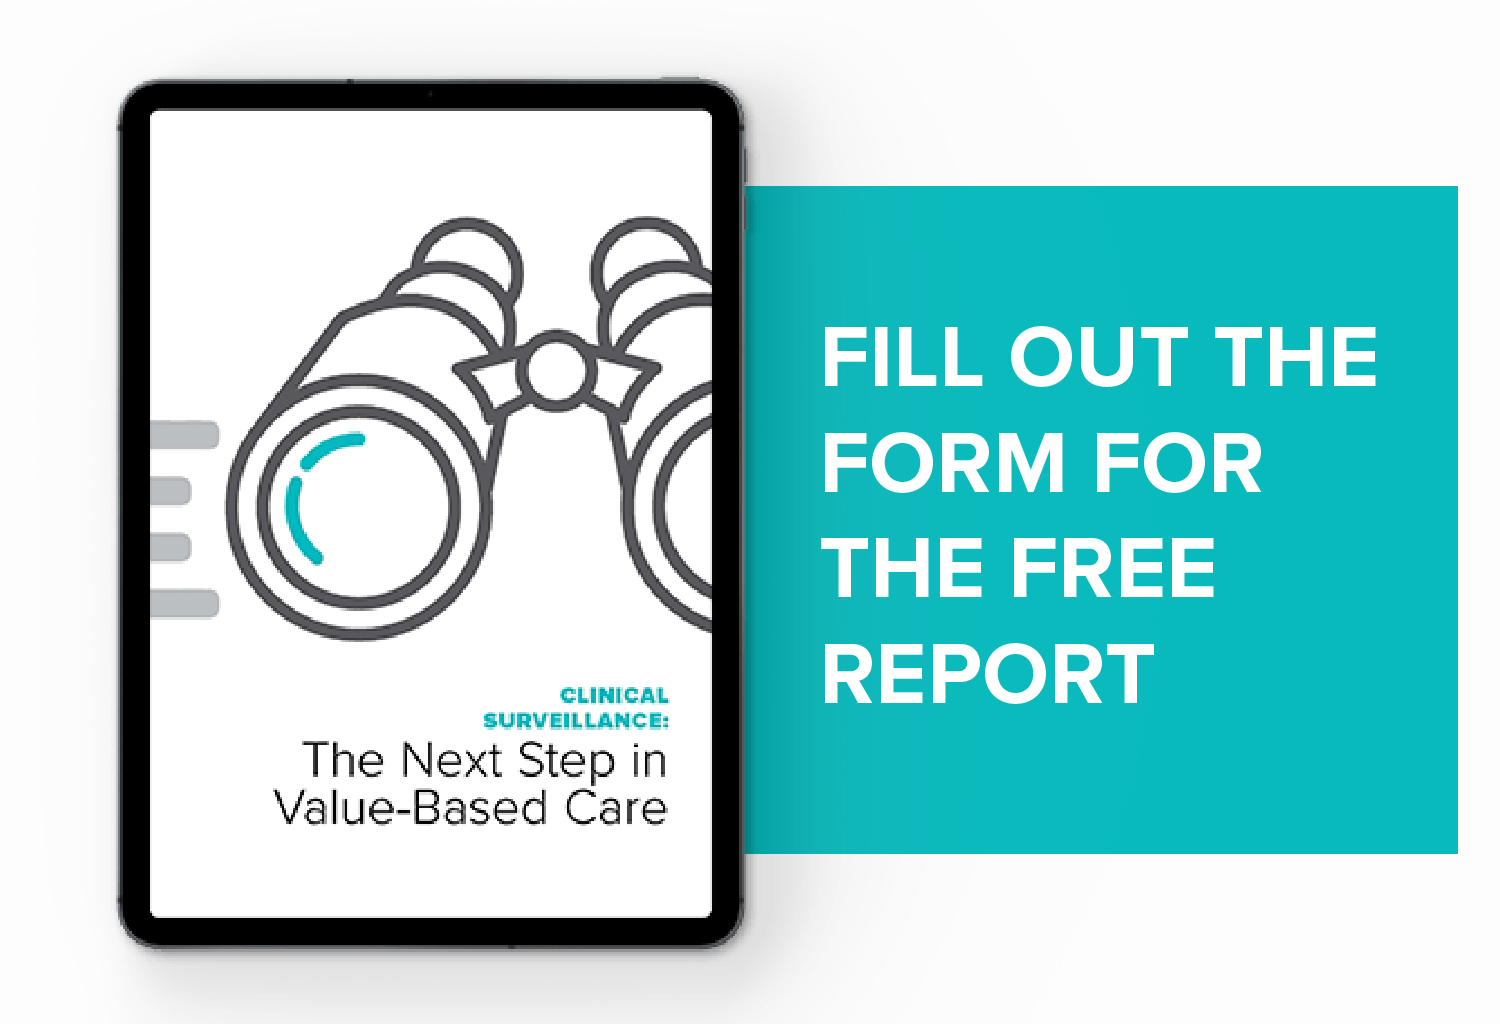 Fill out the form for the free report